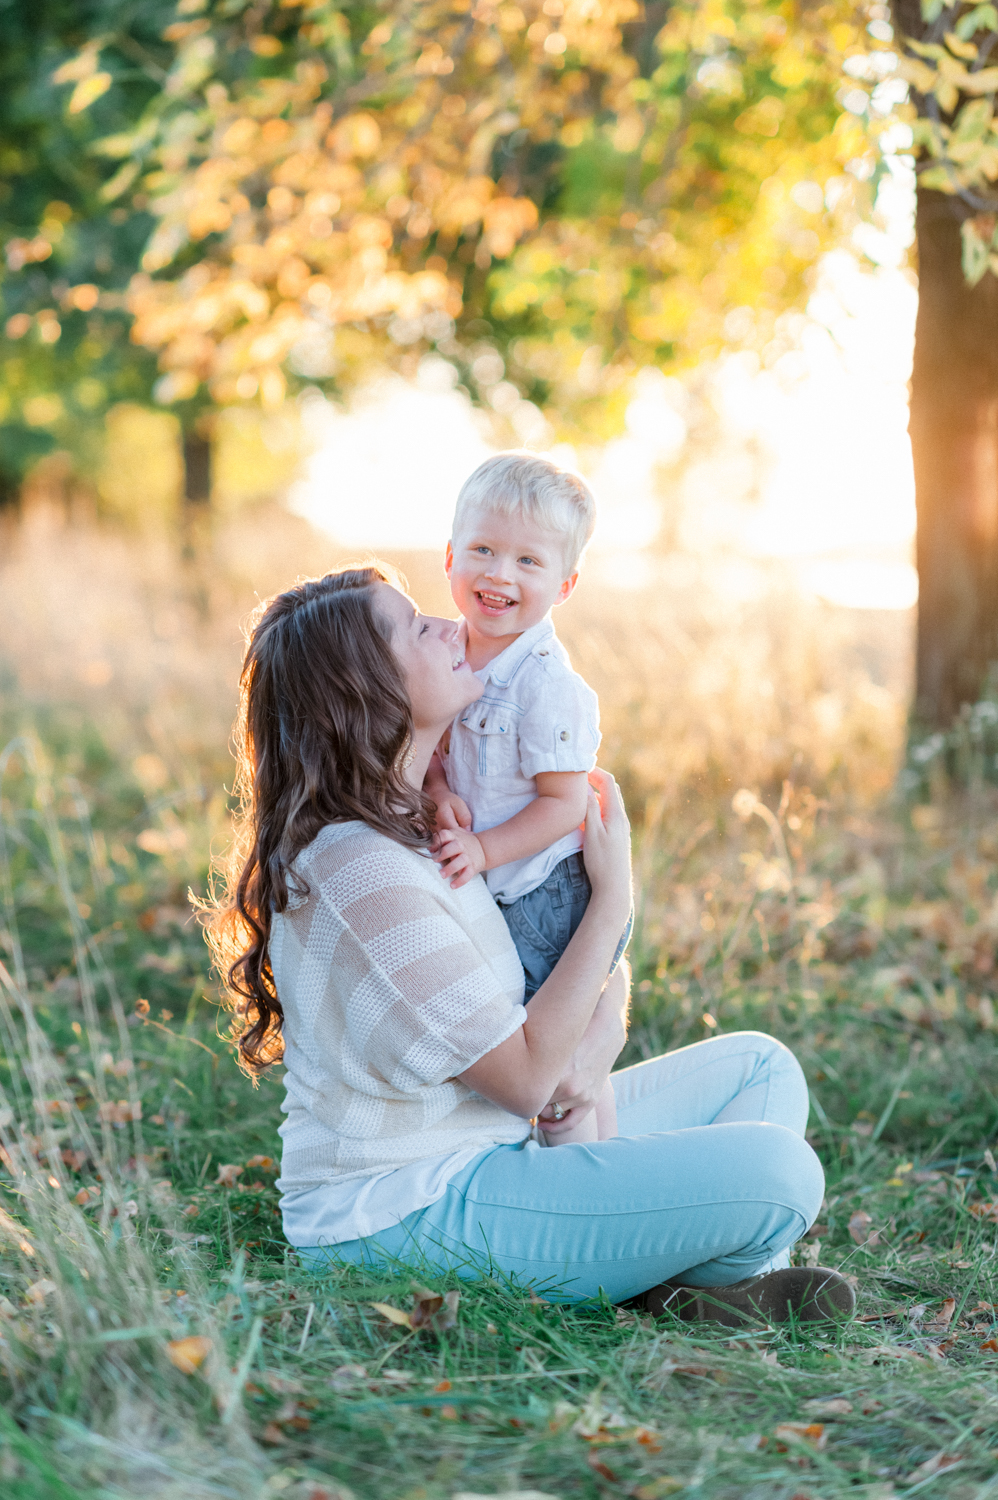 Mam and Toddler | Photography in Dayton, Ohio by Andrea Dozier